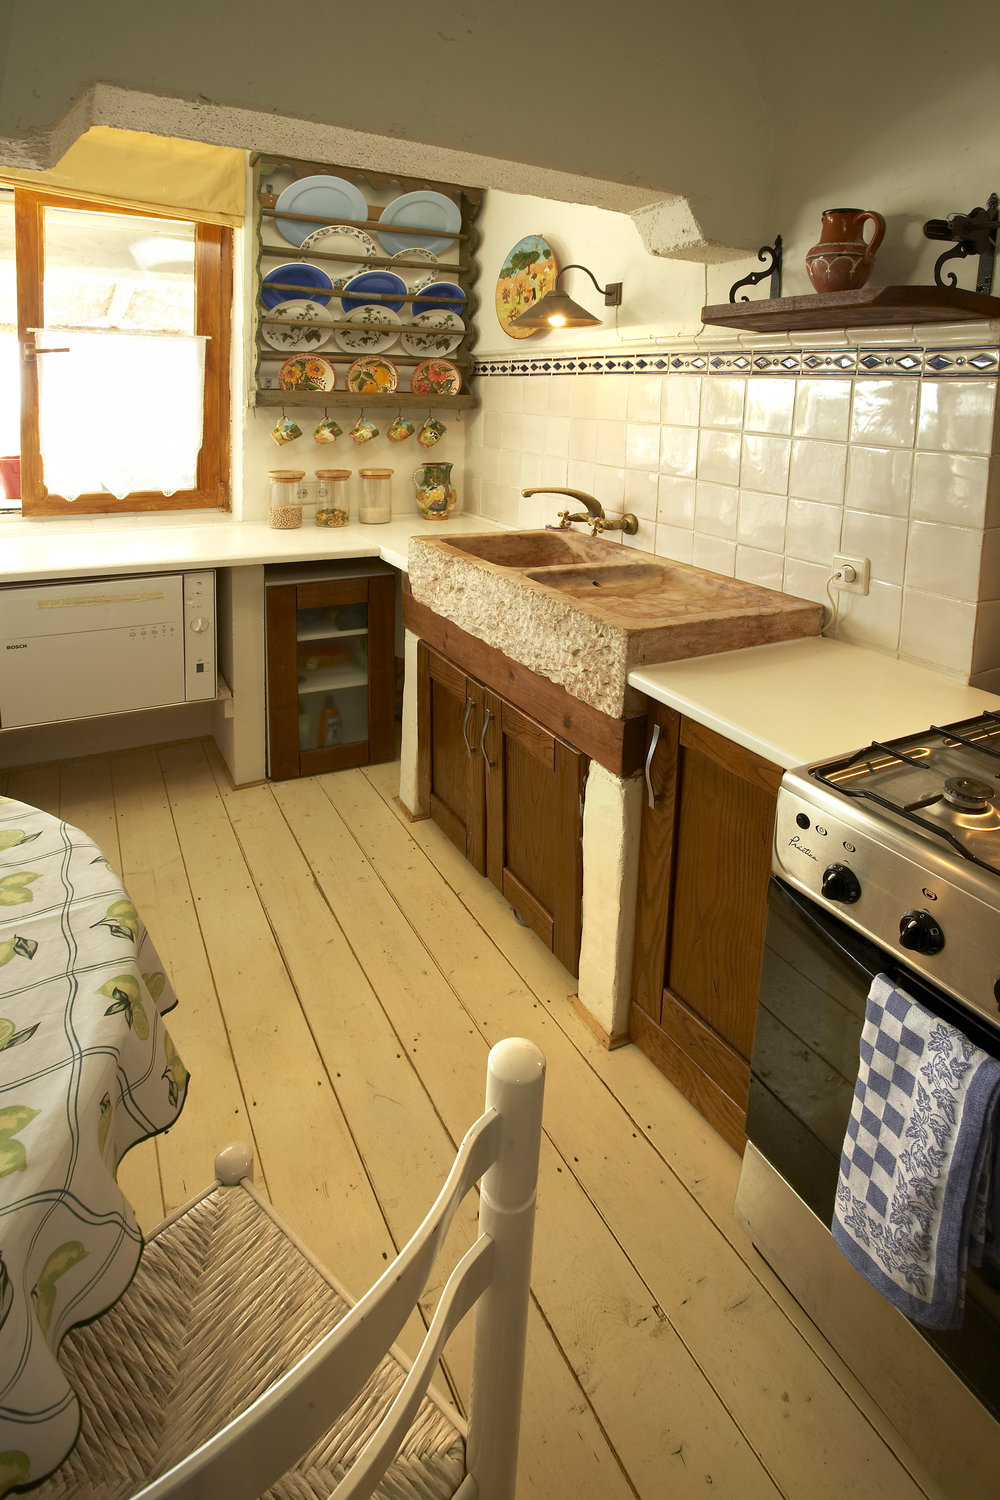 08_Main House Kitchen1.jpg